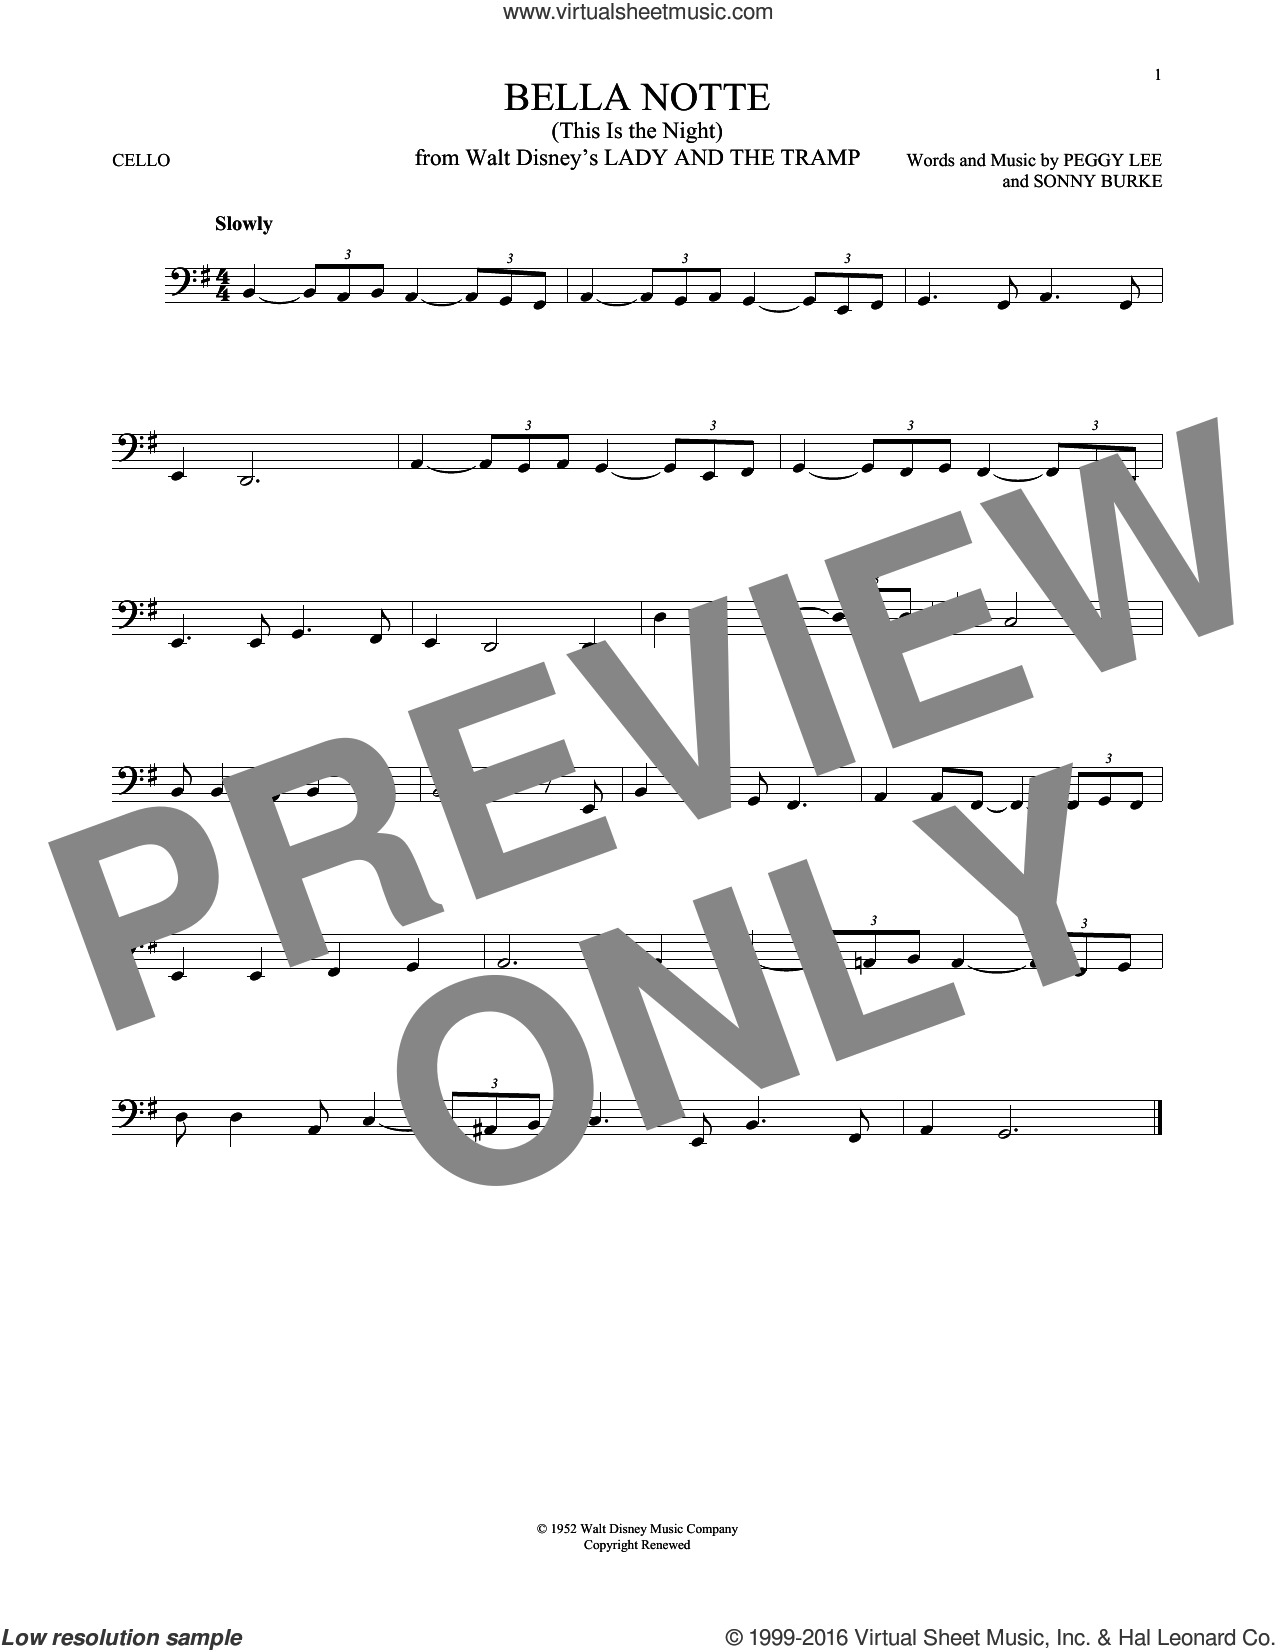 Bella Notte sheet music for cello solo by Peggy Lee, Peggy Lee & Sonny Burke and Sonny Burke, intermediate